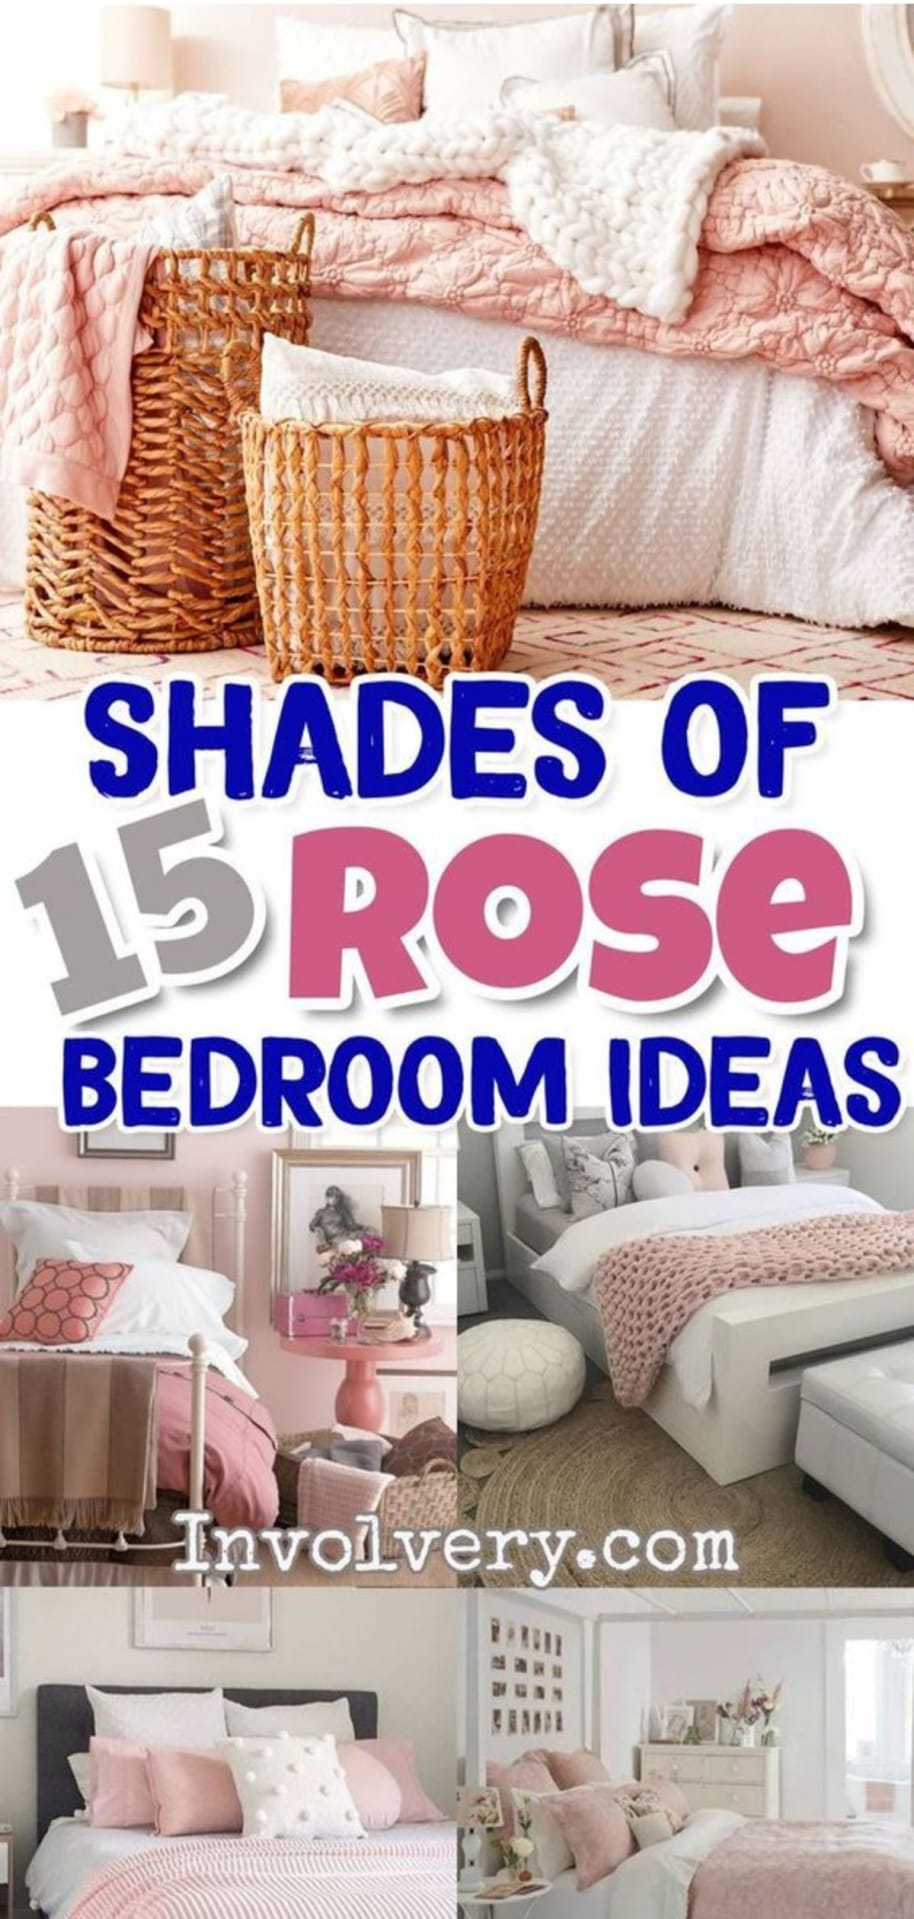 Blush Pink Bedroom Ideas - Dusty Rose Bedroom Decor and Bedding I Love